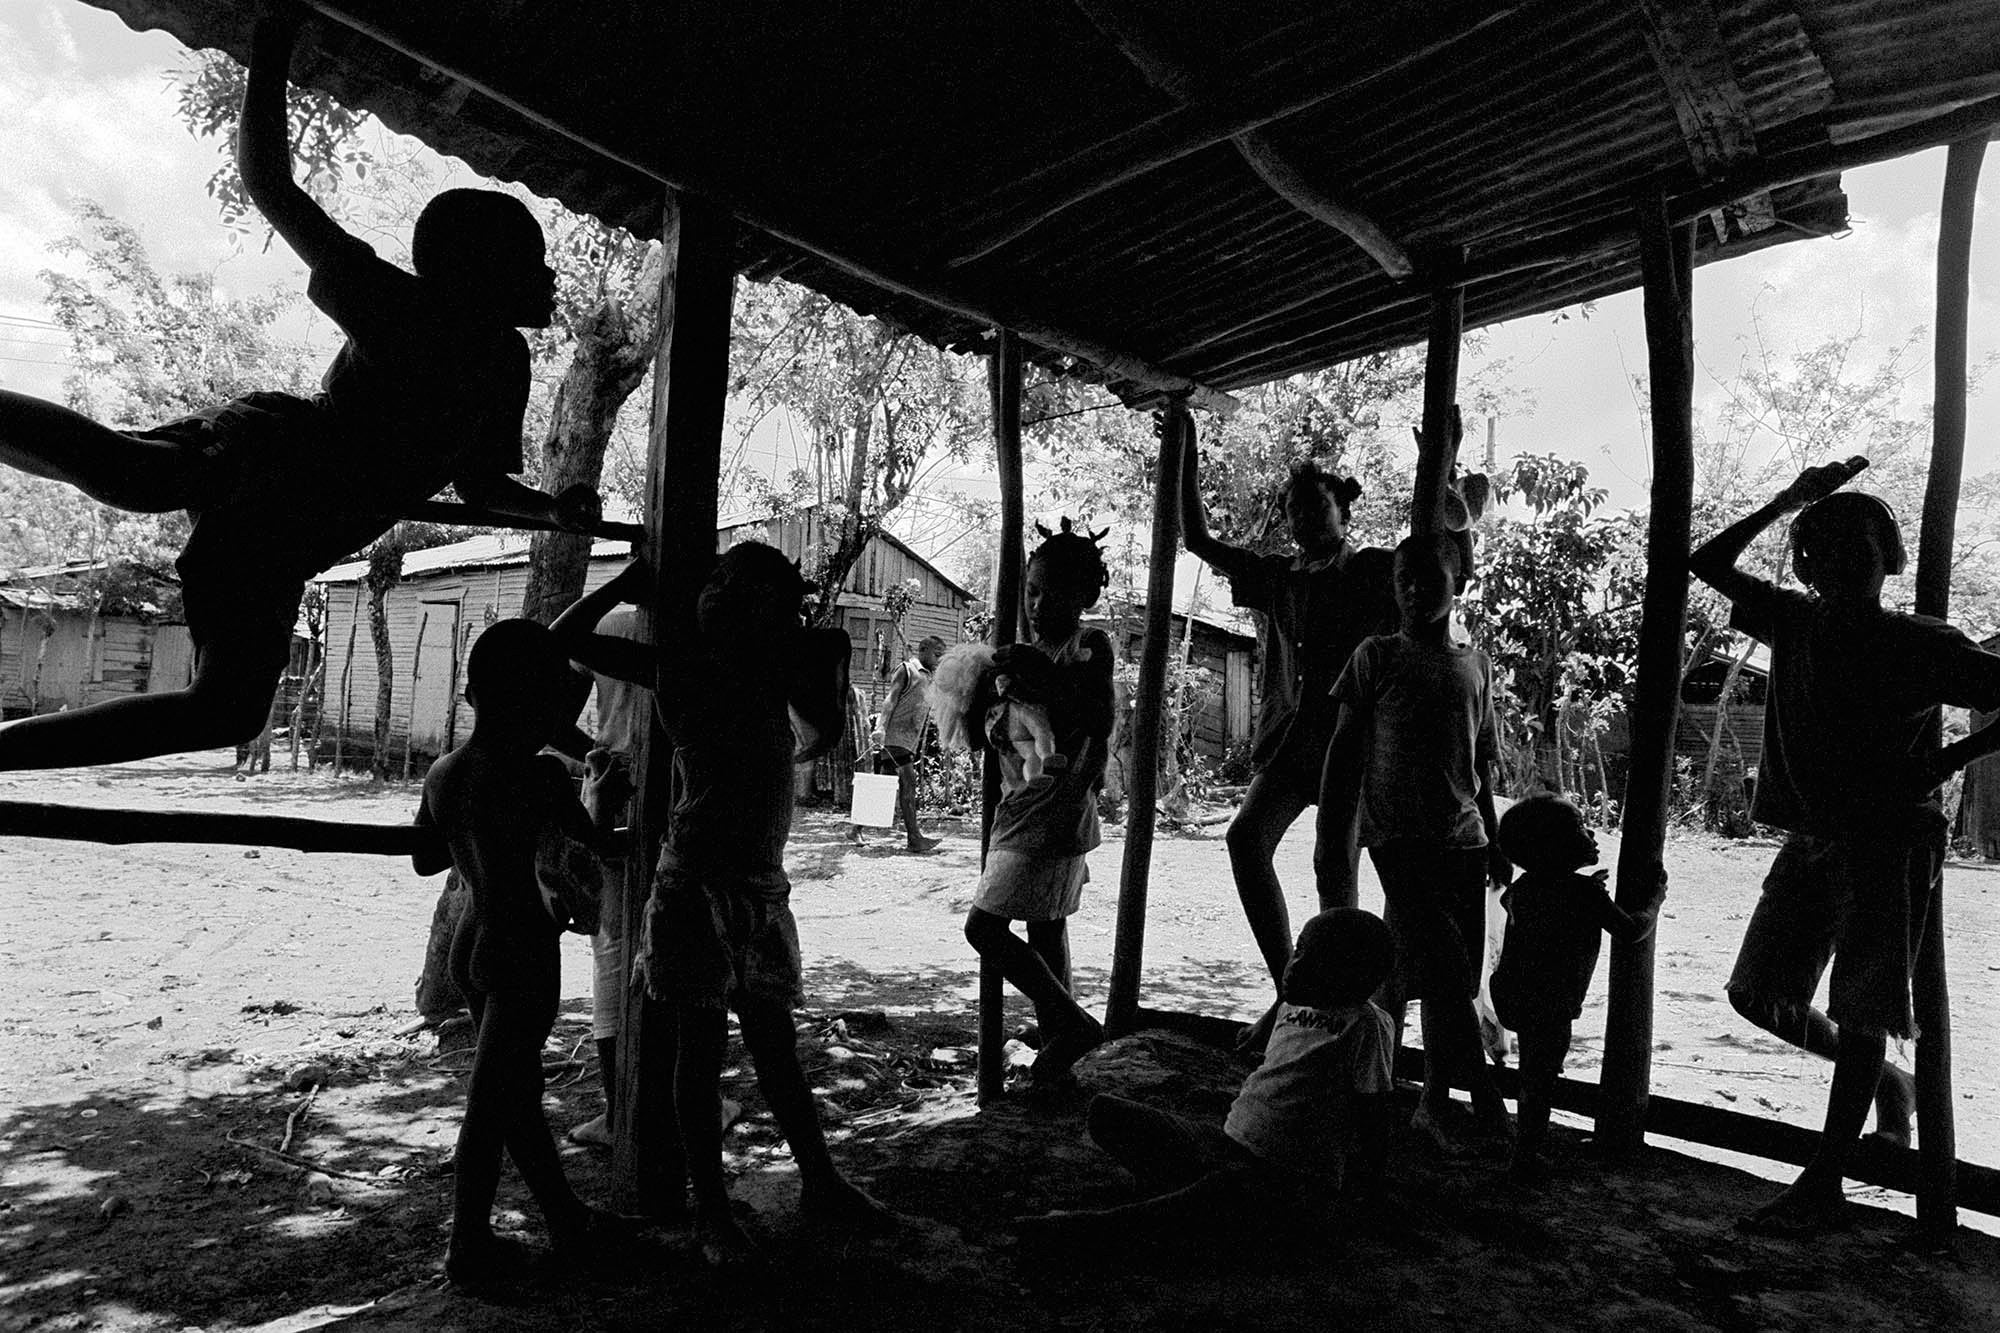 While increasing numbers of people have moved from the bateyes into urban centers like Santo Domingo and Santiago, large numbers of Dominico-Haitians still live in poverty-stricken 'bateyes' on old sugar estates. Children play in a batey in central DR. Most of the children do not possess any documents.